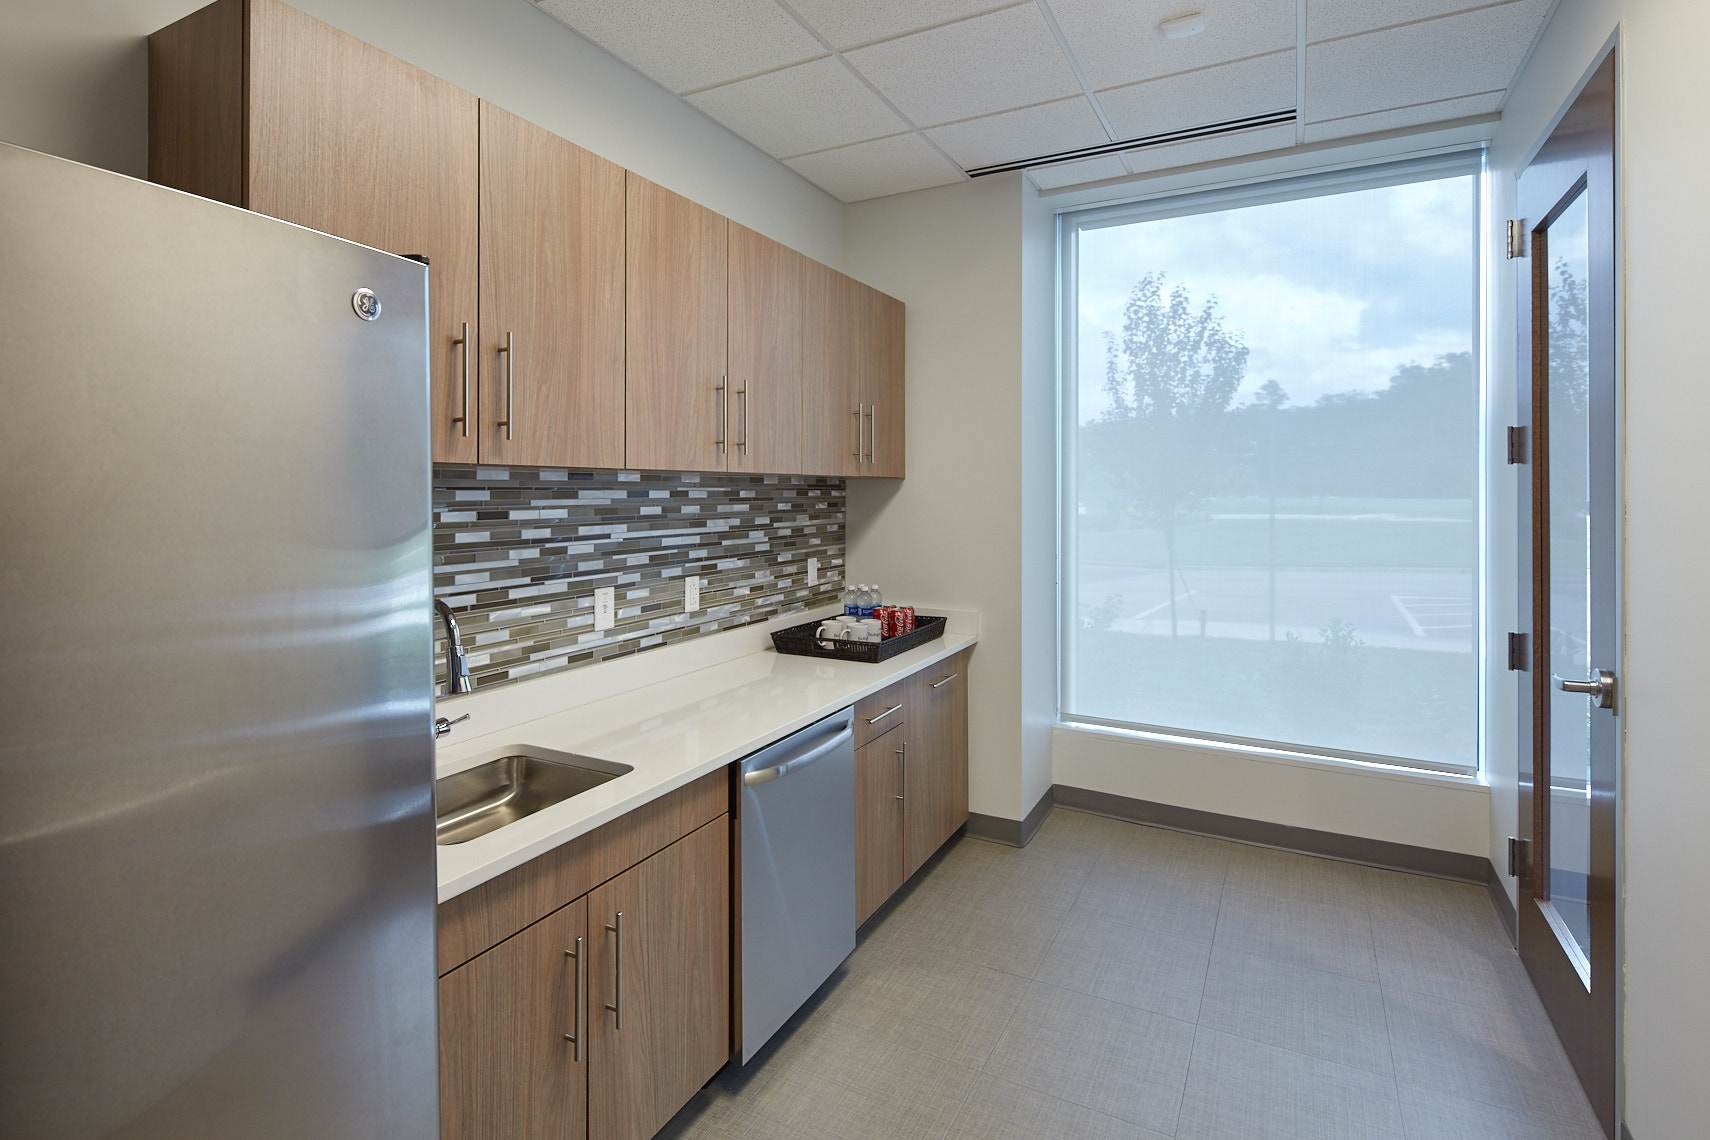 Biologics, Cary NC / Highwoods Properties - HagerSmith Design PA, Raleigh NC